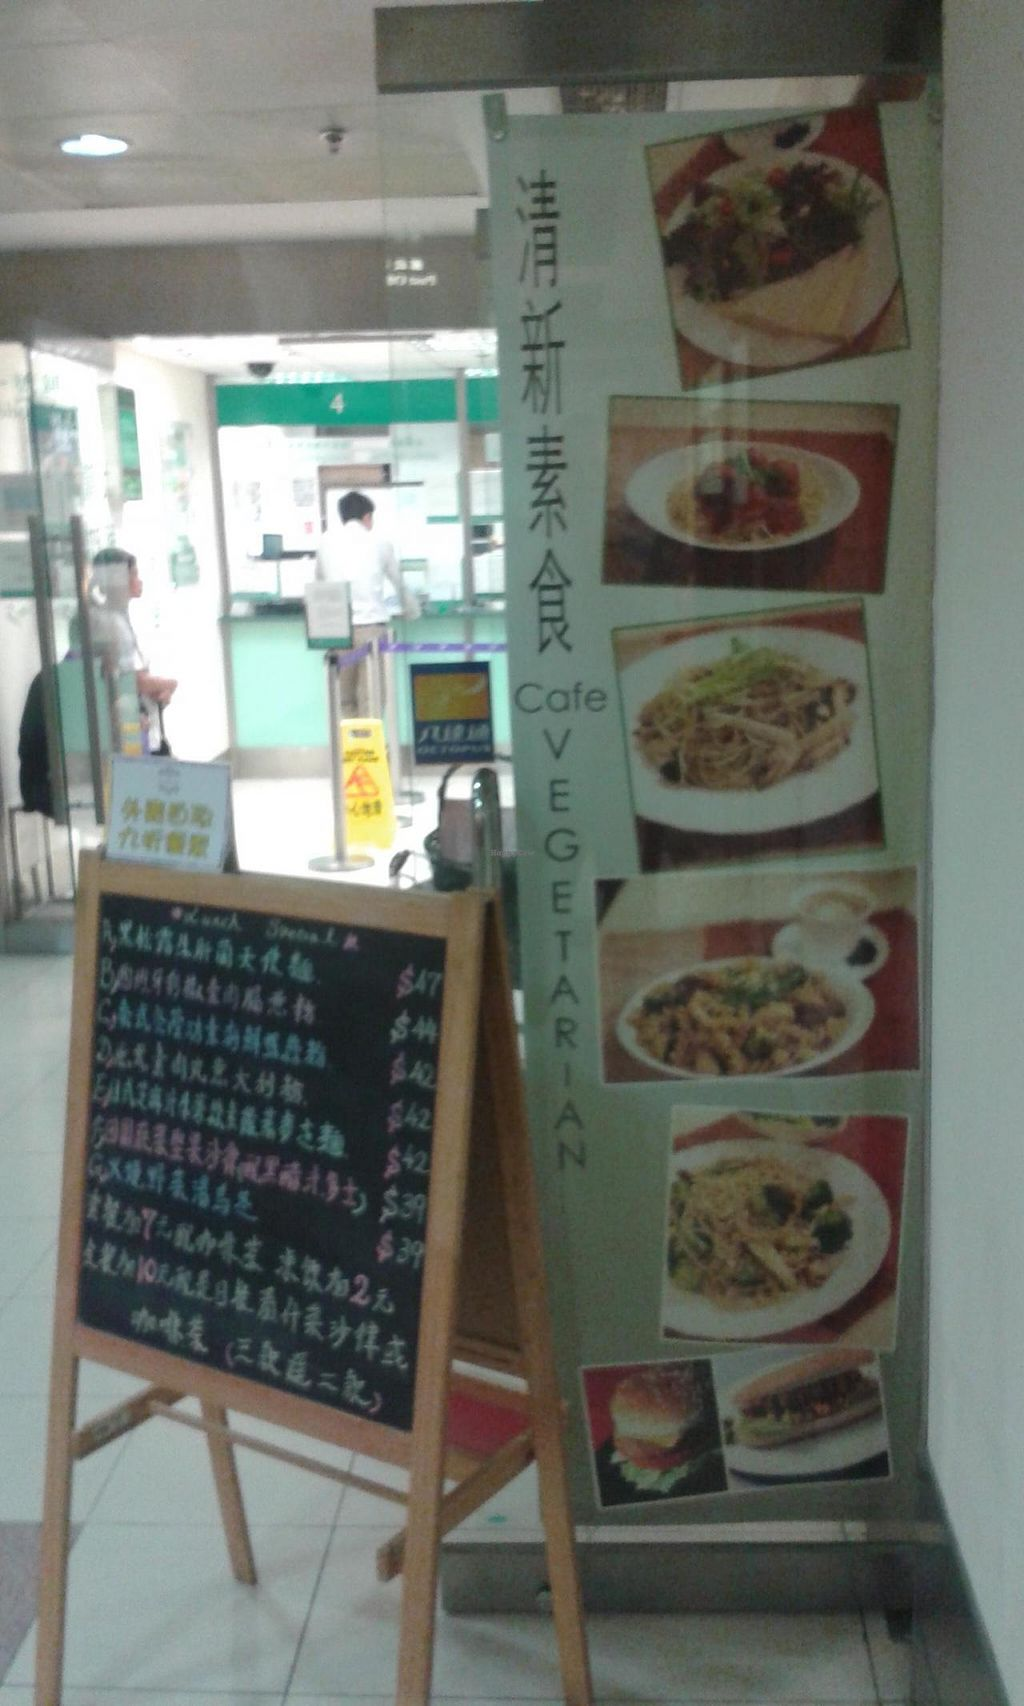 "Photo of Cafe La Fresco Veggie - Enterprises Square  by <a href=""/members/profile/Stevie"">Stevie</a> <br/>Outside <br/> April 20, 2015  - <a href='/contact/abuse/image/51532/99760'>Report</a>"